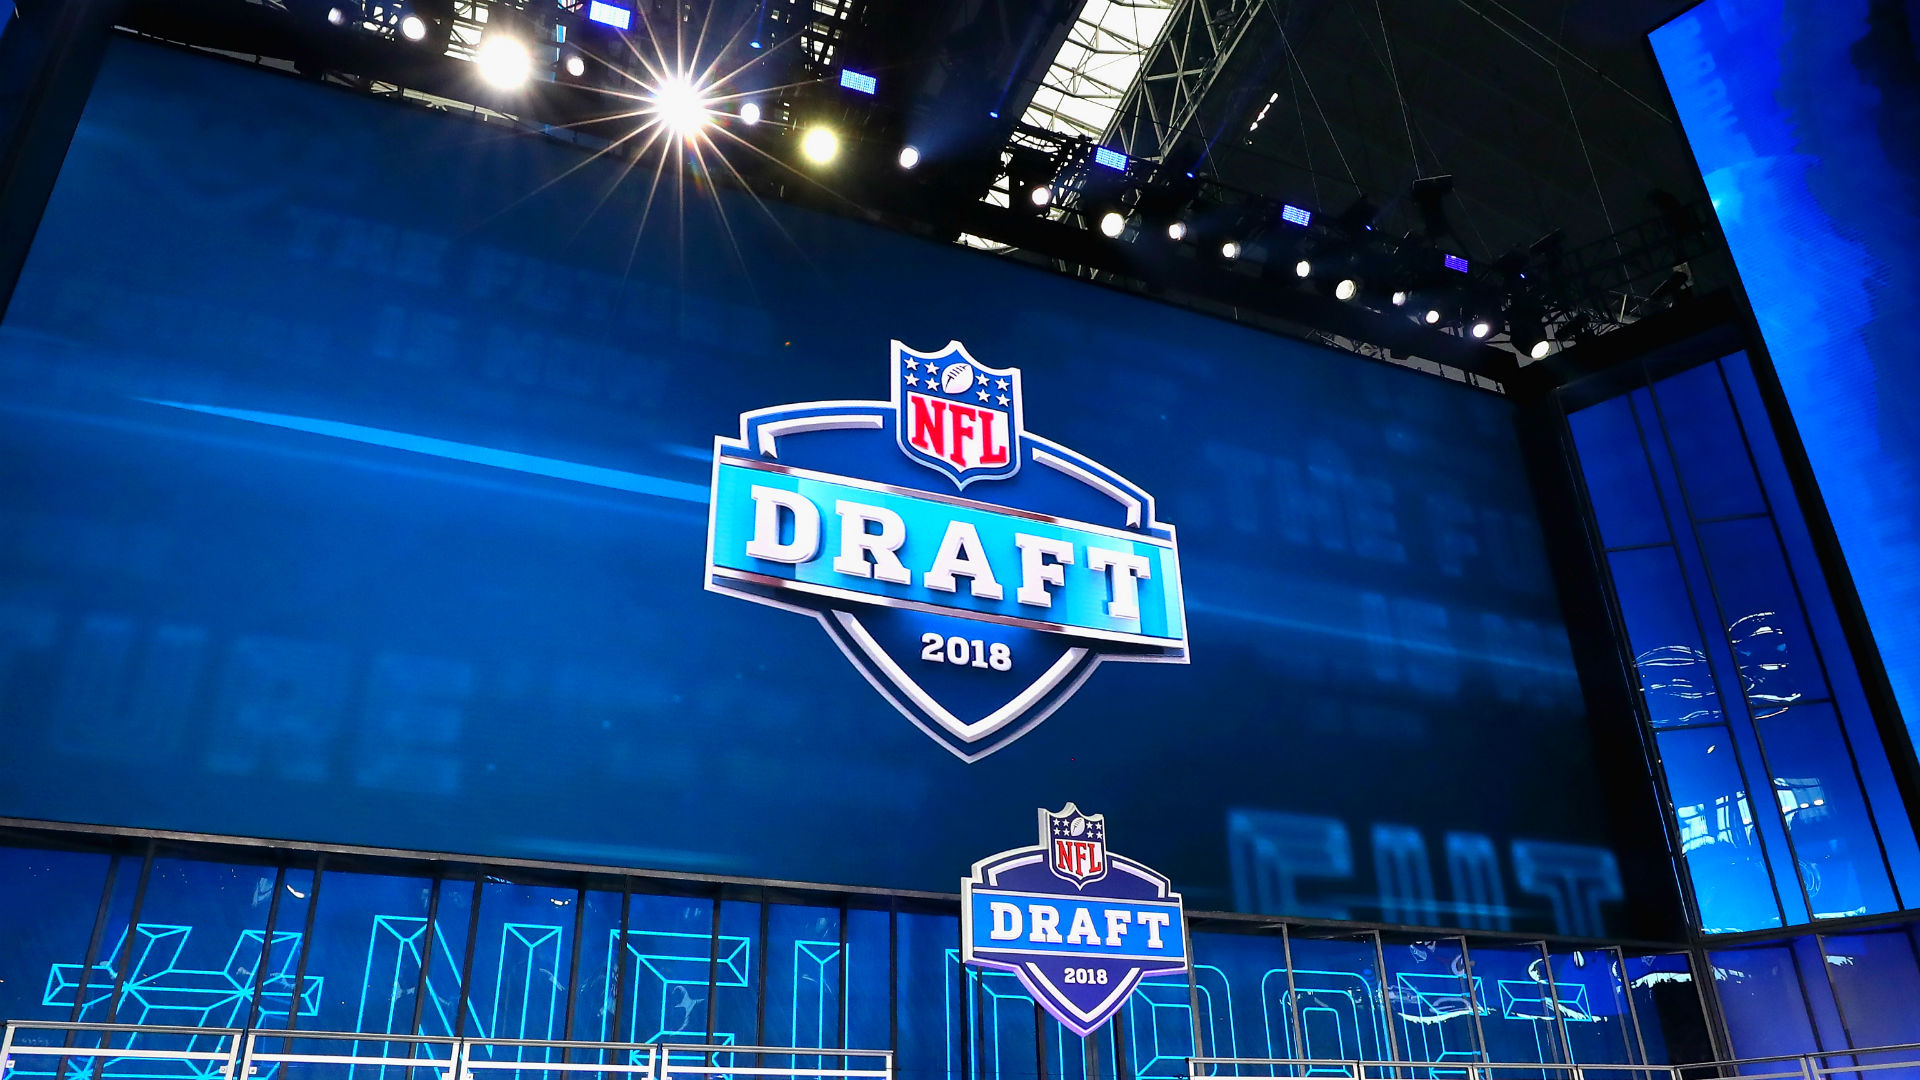 How does the NFL Draft work? Rules, rounds, eligibility and